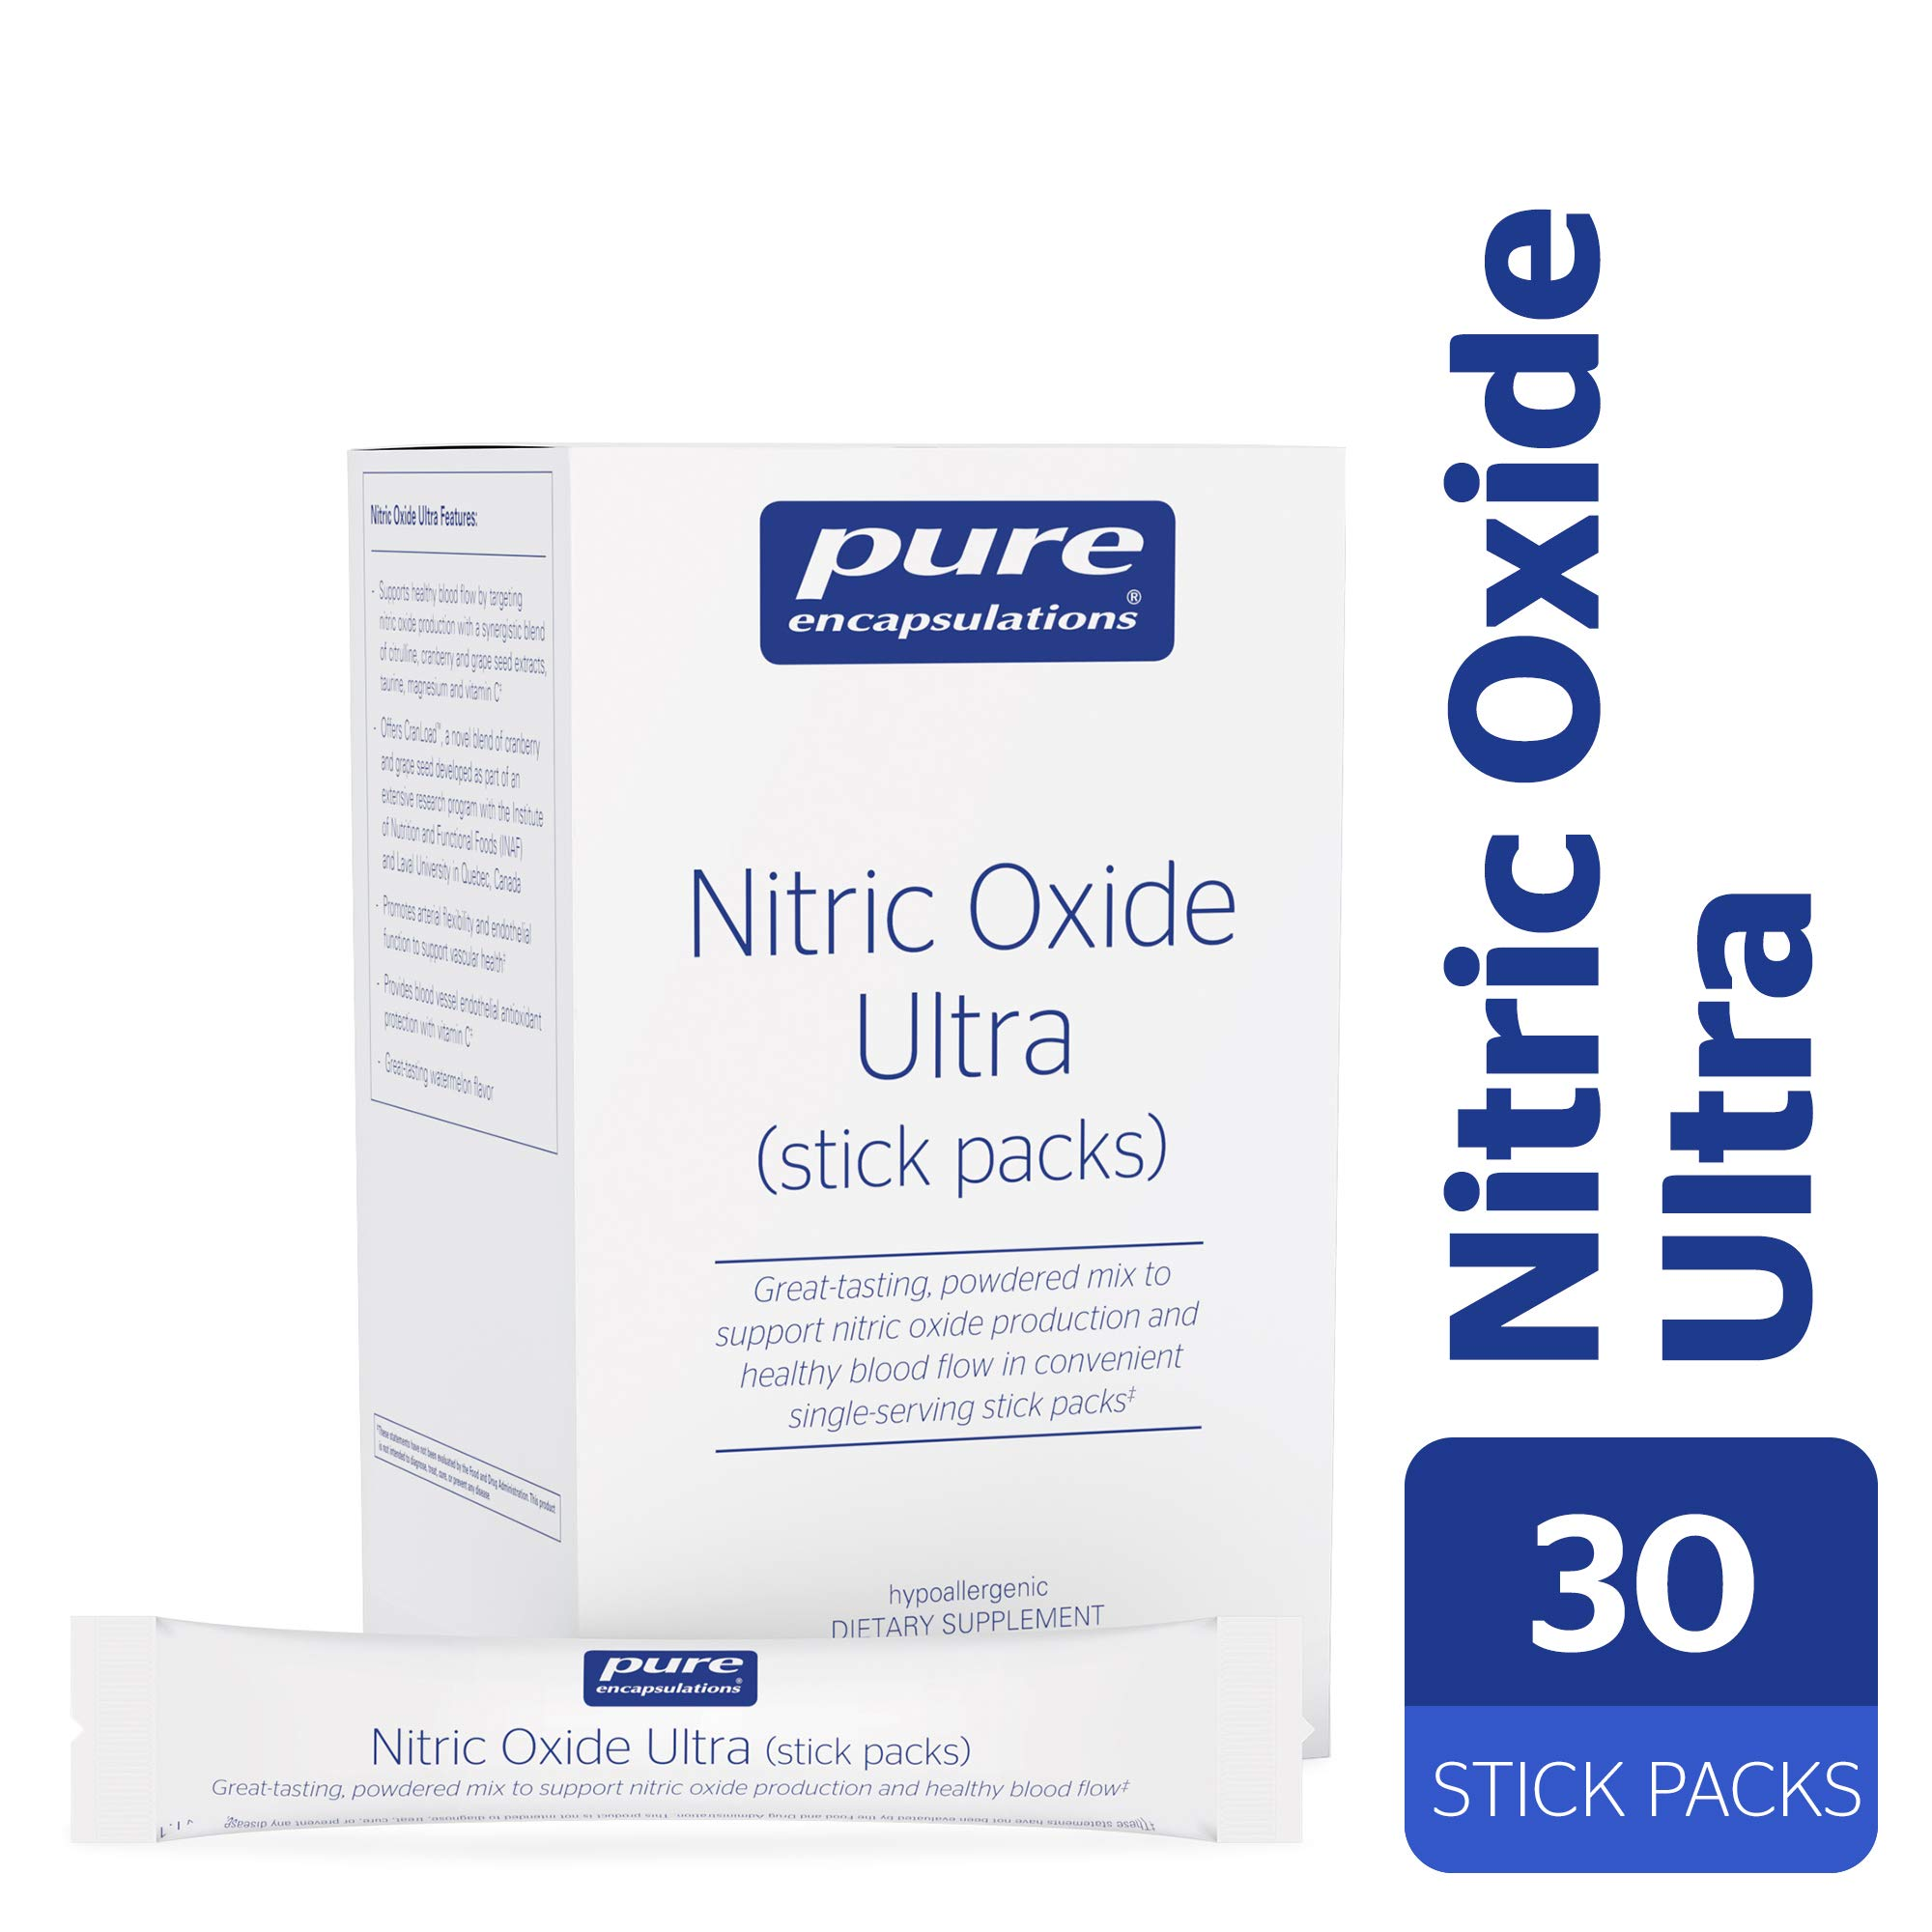 Pure Encapsulations - Nitric Oxide Ultra (Stick Packs) - Hypoallergenic Supplement Supports Nitric Oxide Production and Healthy Blood Flow* - 30 Packets by Pure Encapsulations (Image #1)